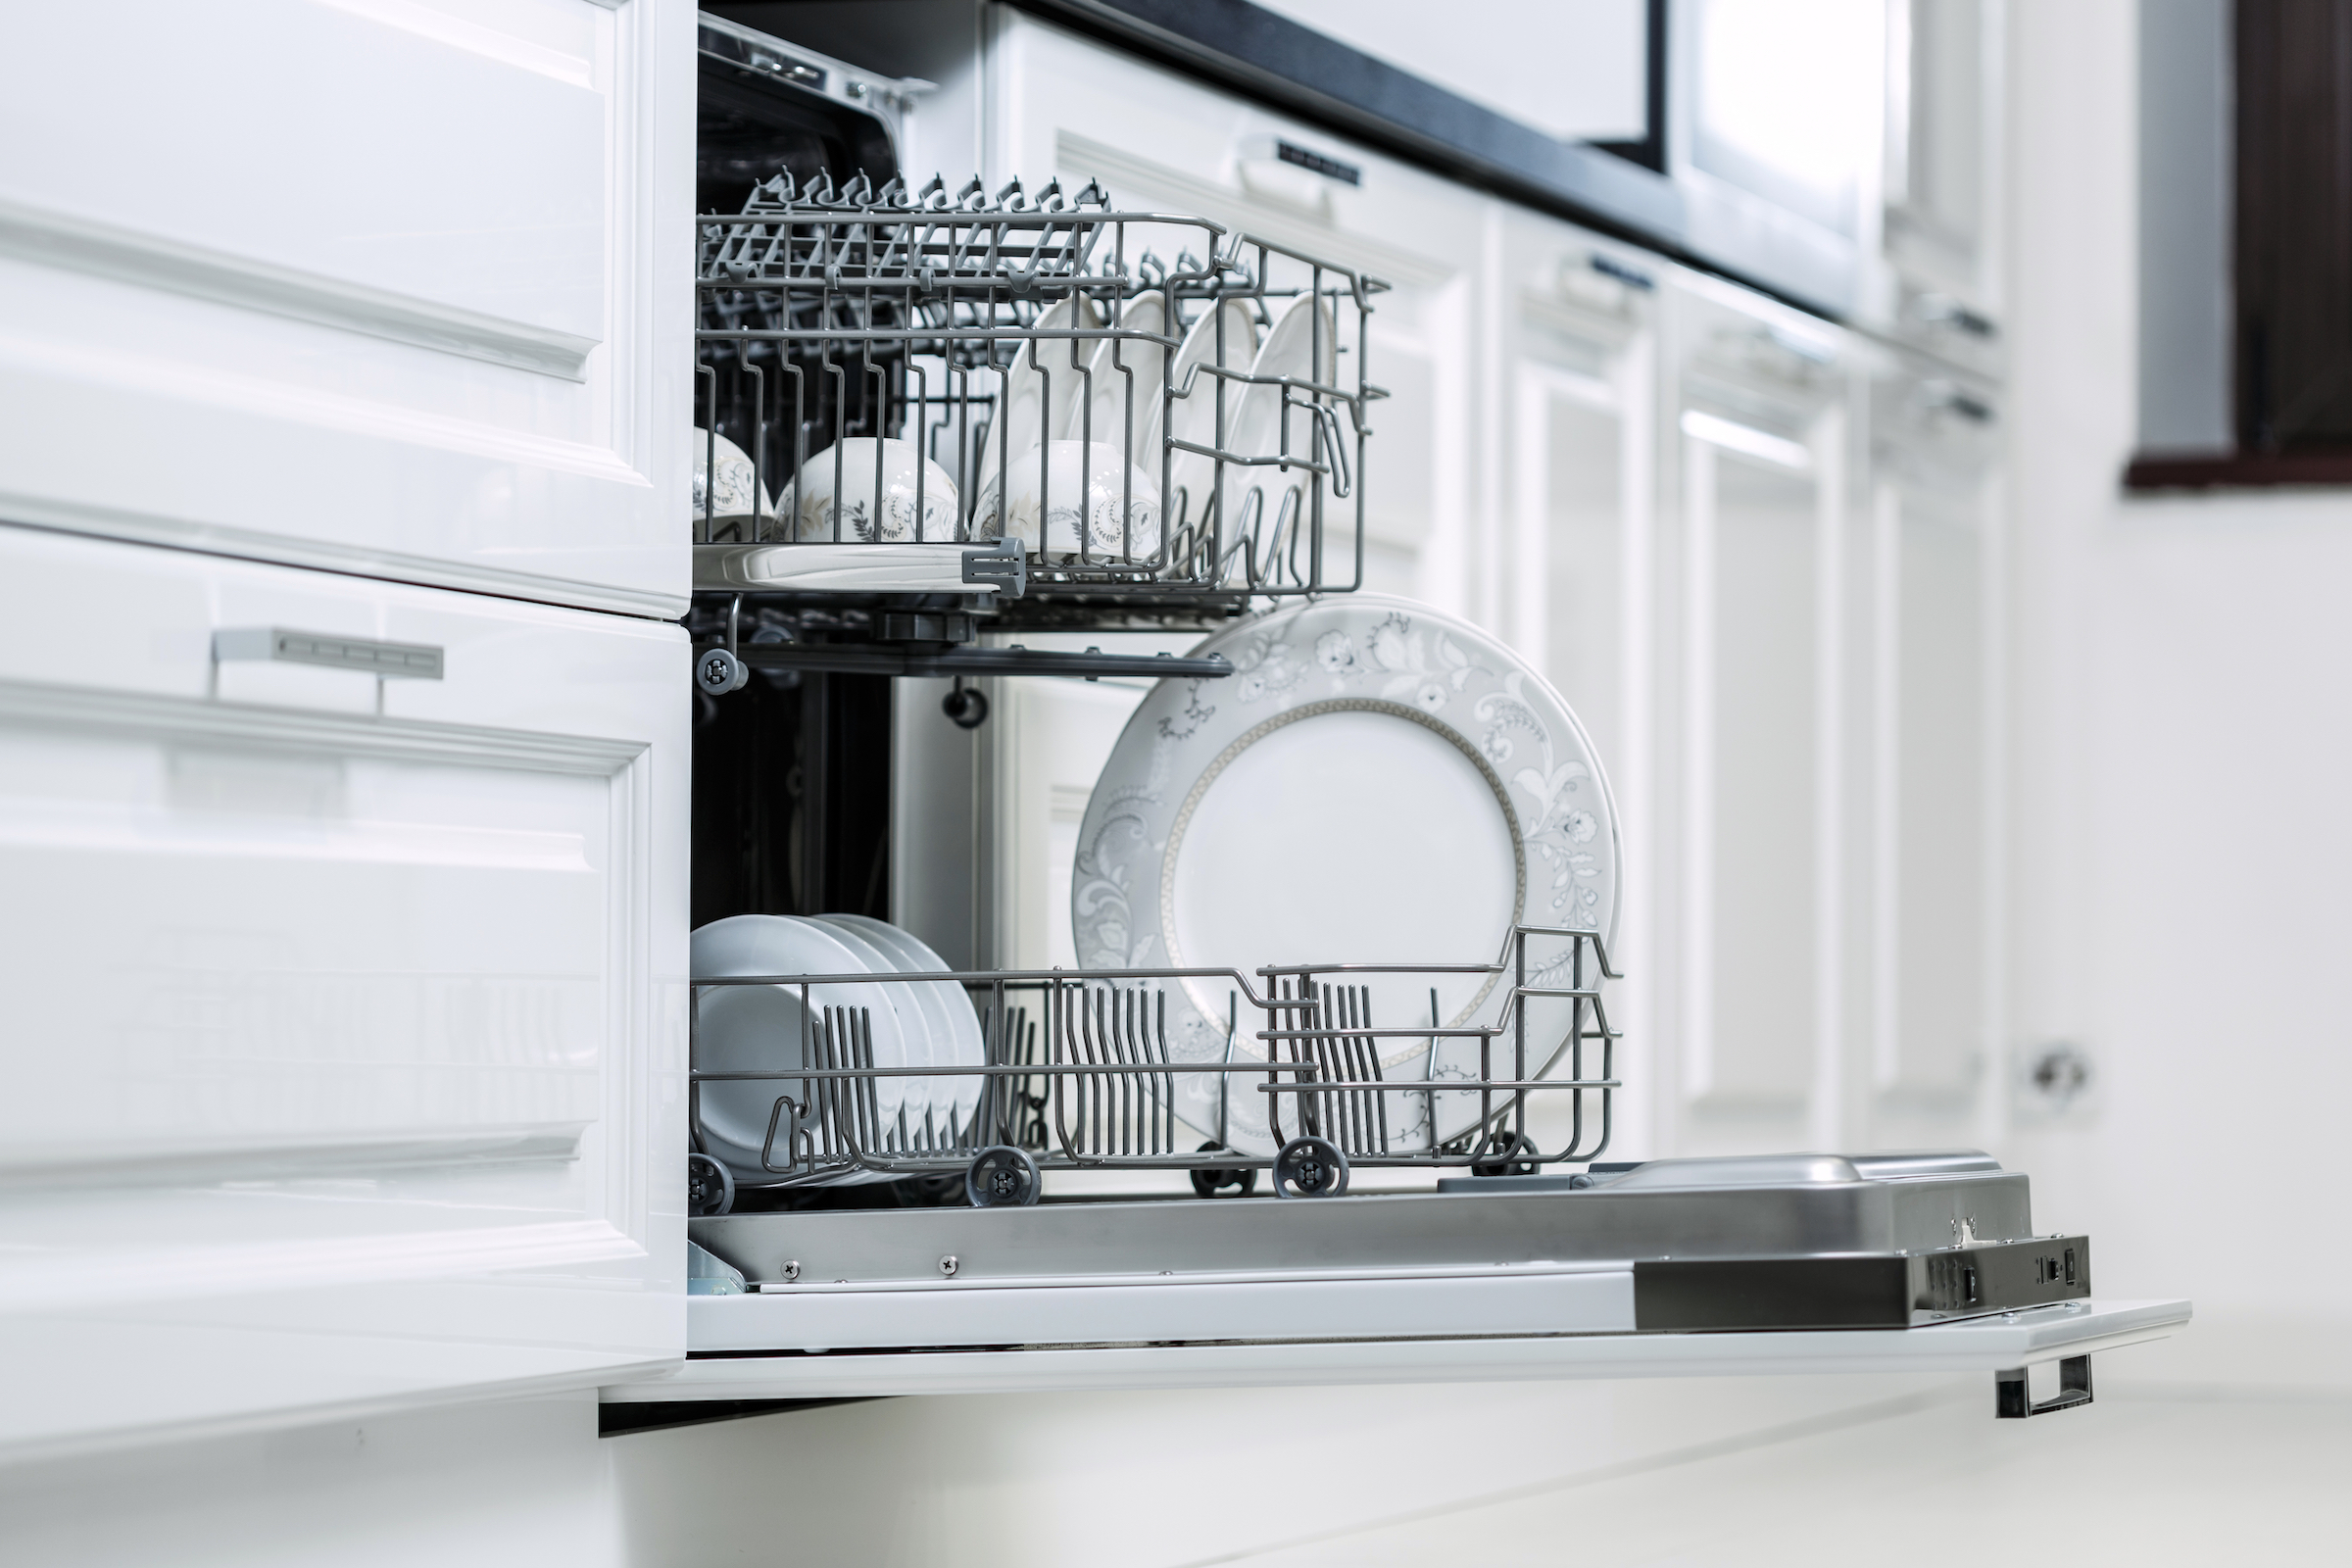 The best black Friday appliance deals of 2019 for dishwashers